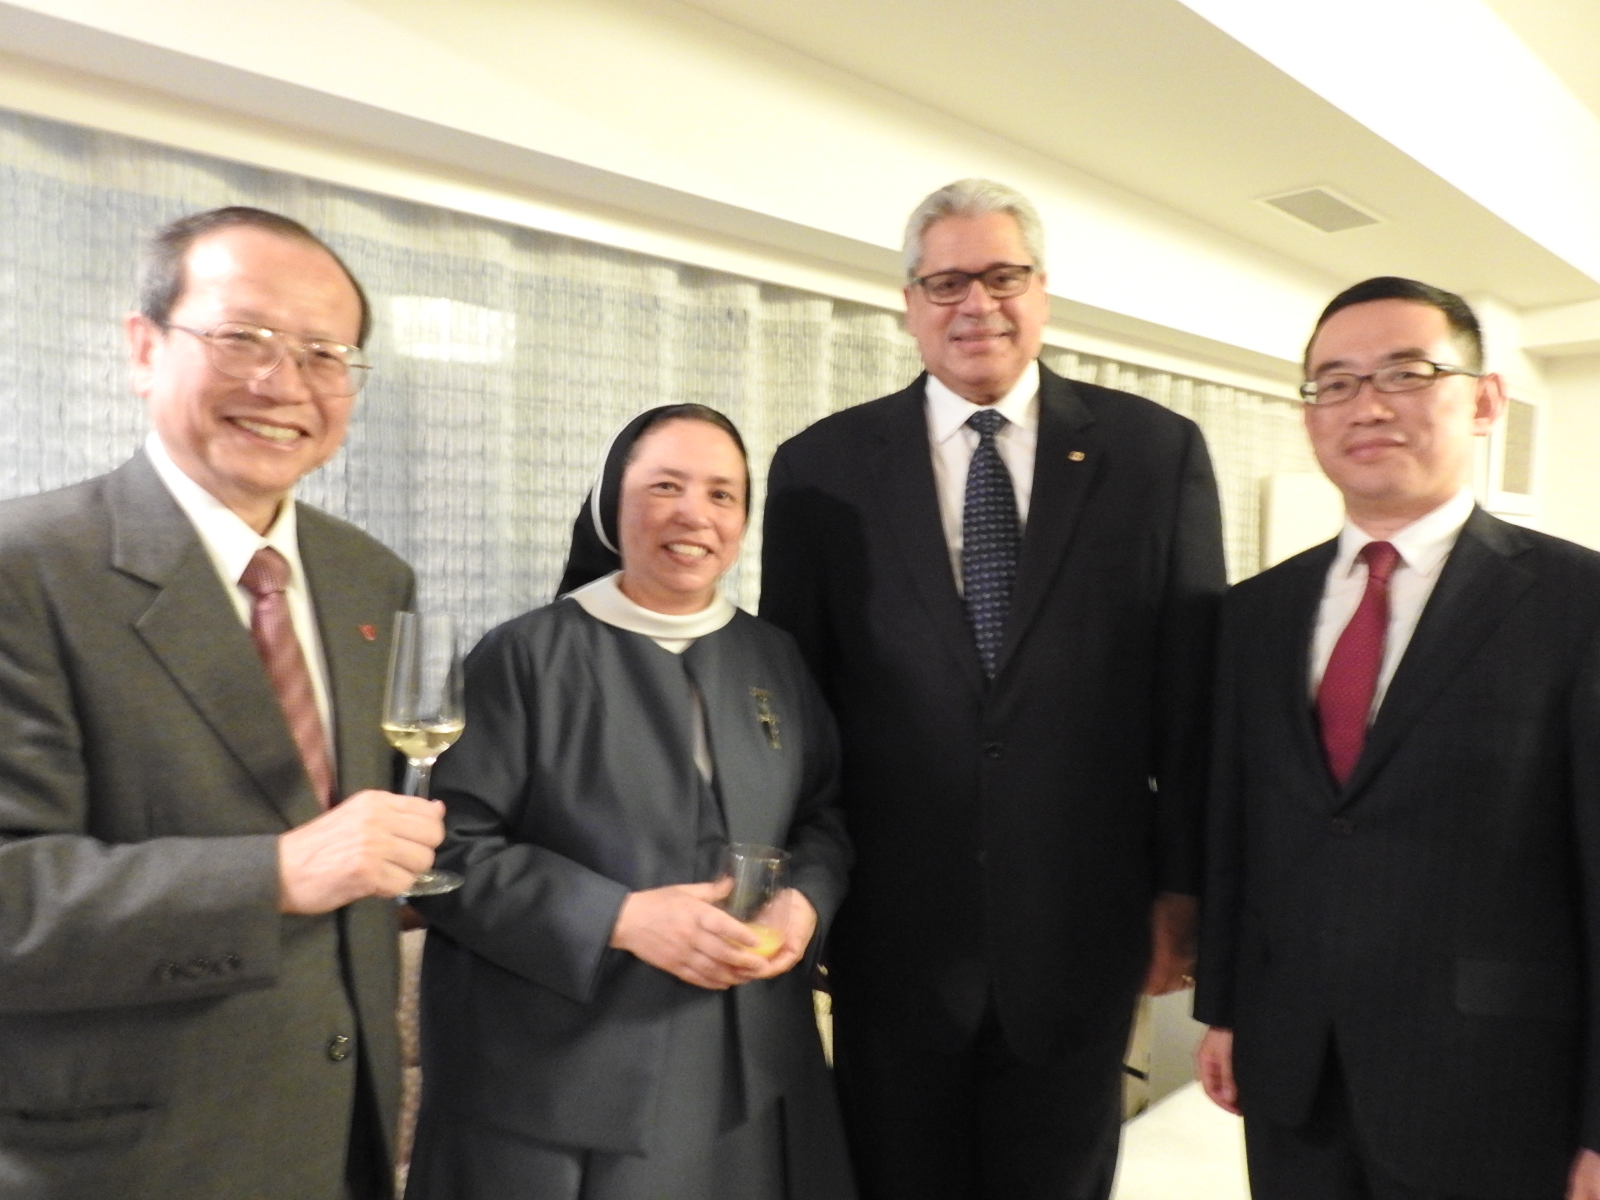 Participants of cocktail, from left to right, Chancellor of Sophia University, sister from St. Ignatius church, Ambassador of the Dominican Republic, Director of the Centro American and the Caribbean  of the Ministry of Foreign Affairs of Japan.